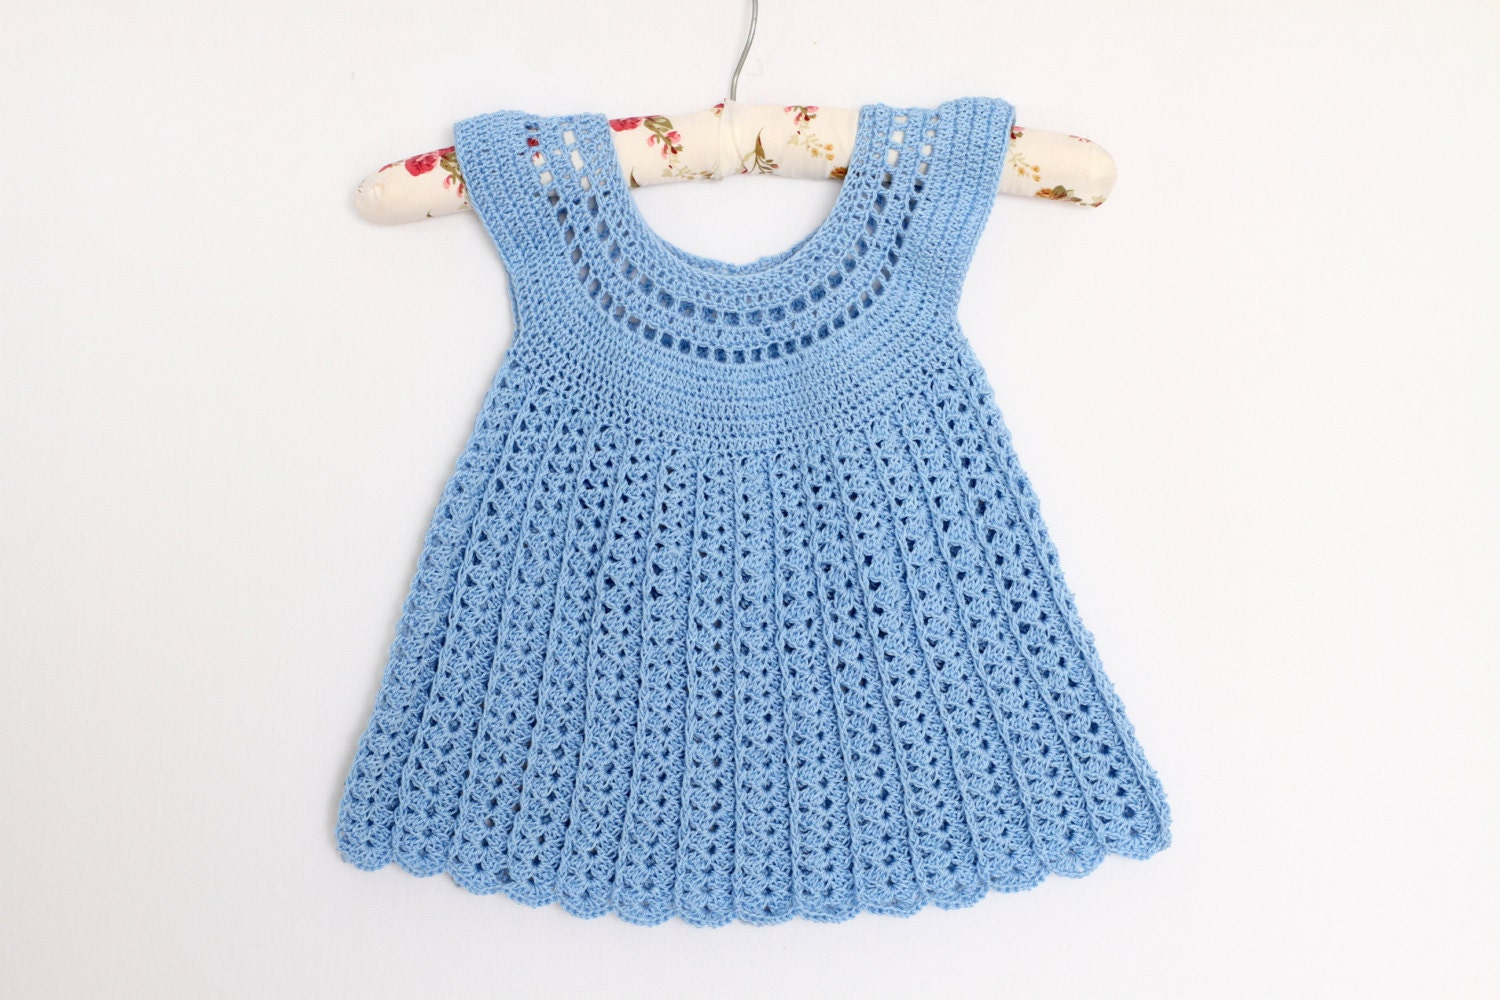 Knitted Dress Pattern For 2 Year Old : Crochet dress pattern Girls Crochet dress for 2-3 years-old